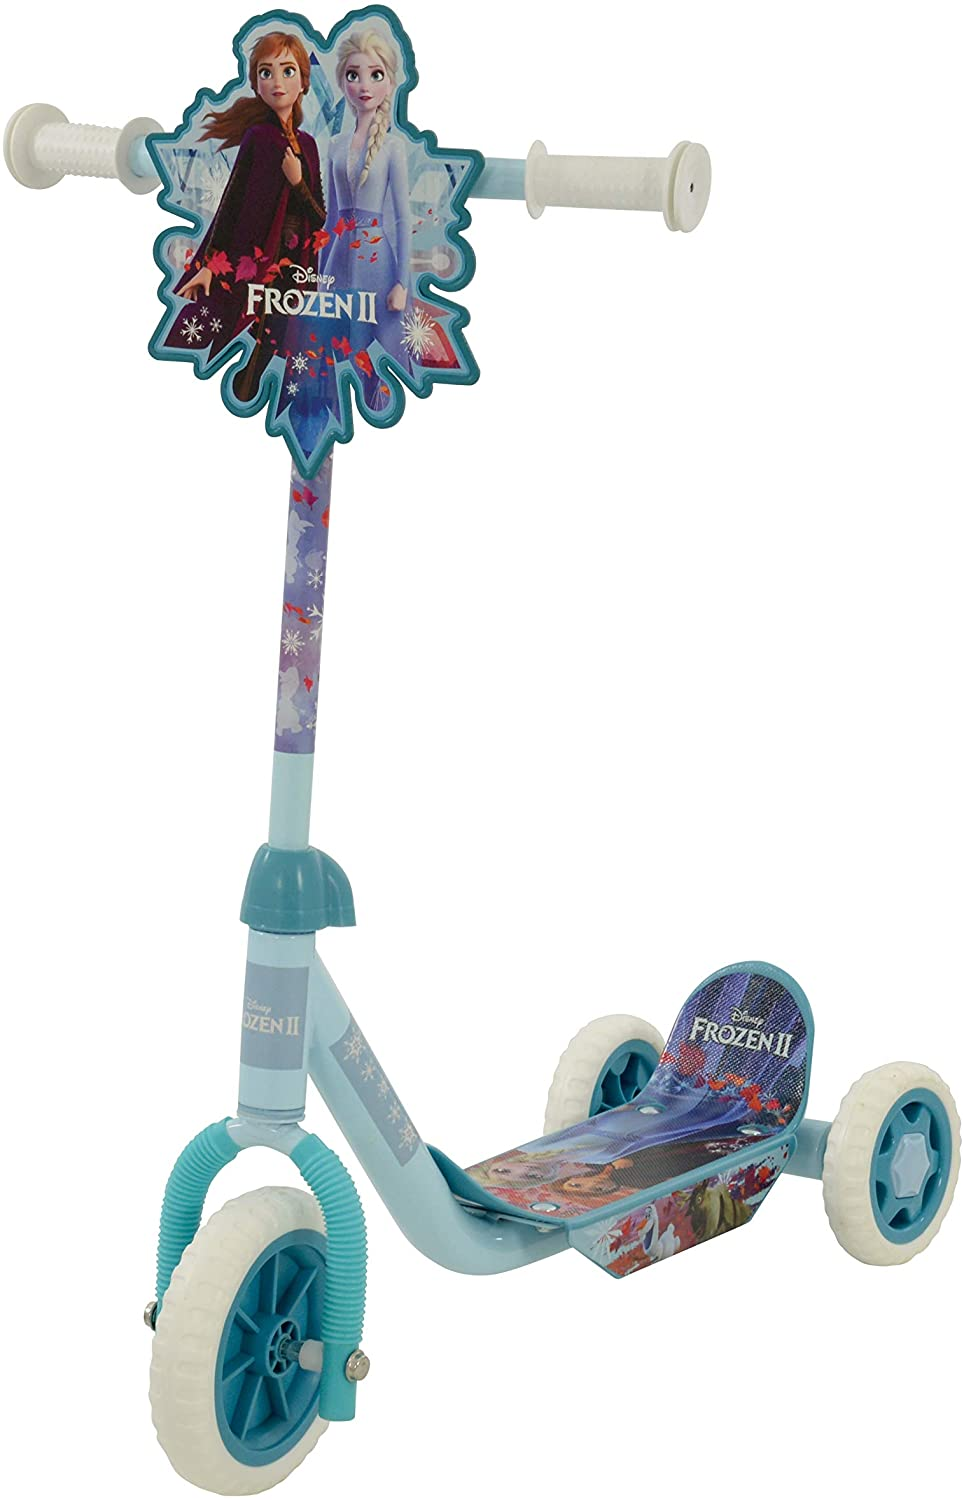 Frozen 2 - Deluxe Tri-Scooter (M004166)